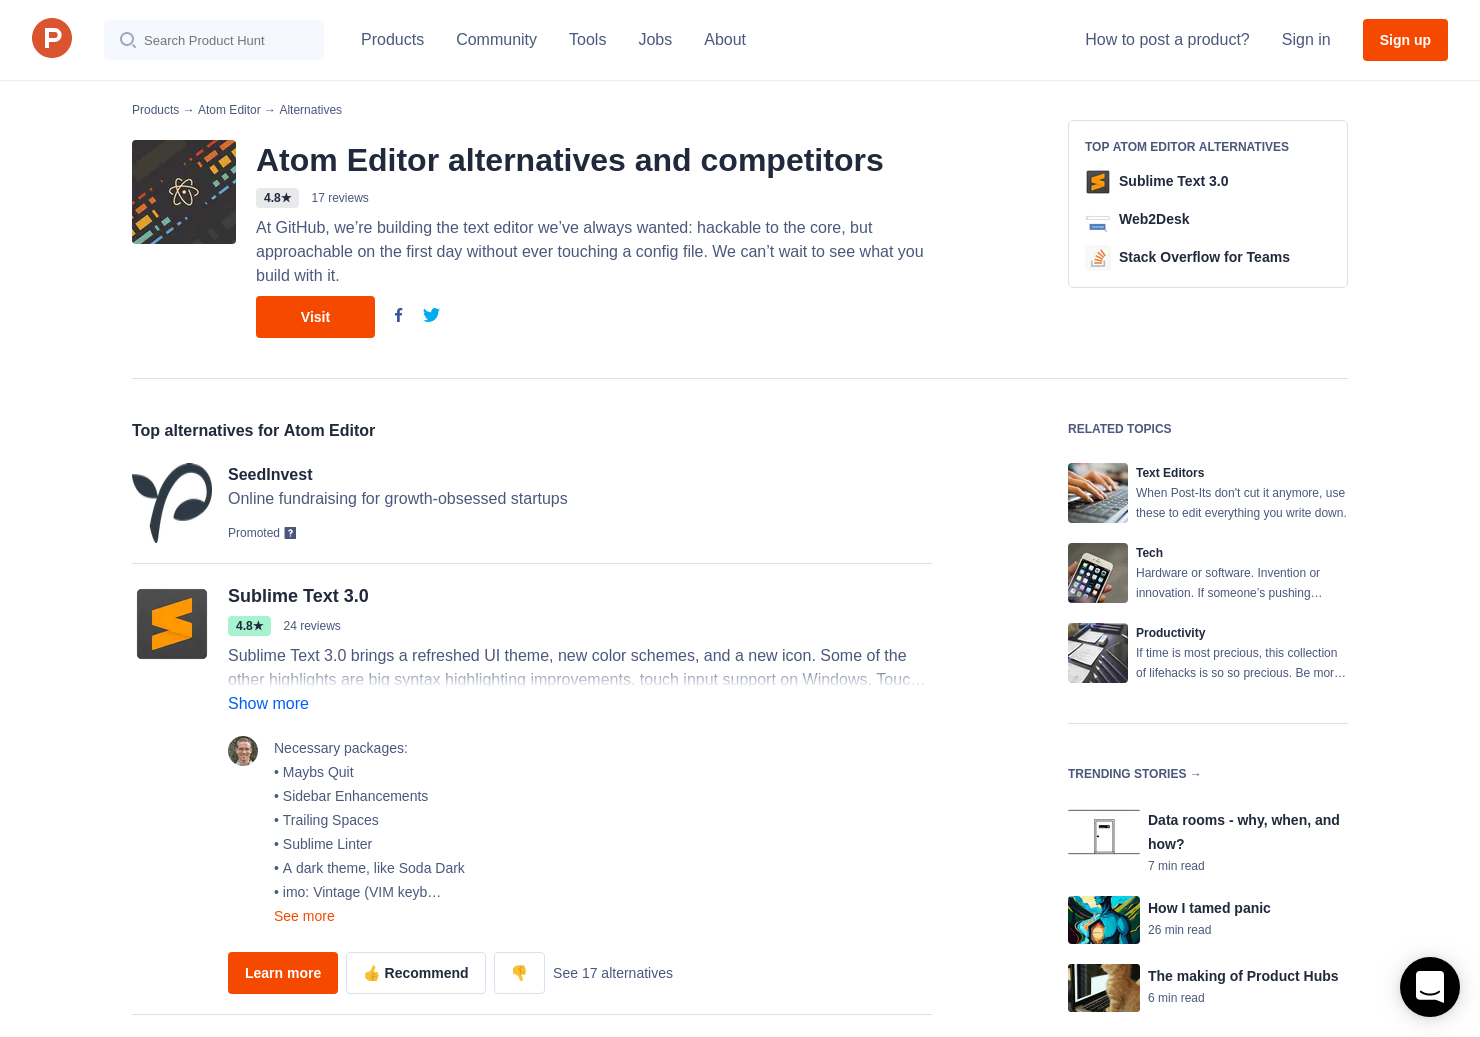 11 Alternatives to Electron 1 0 | Product Hunt